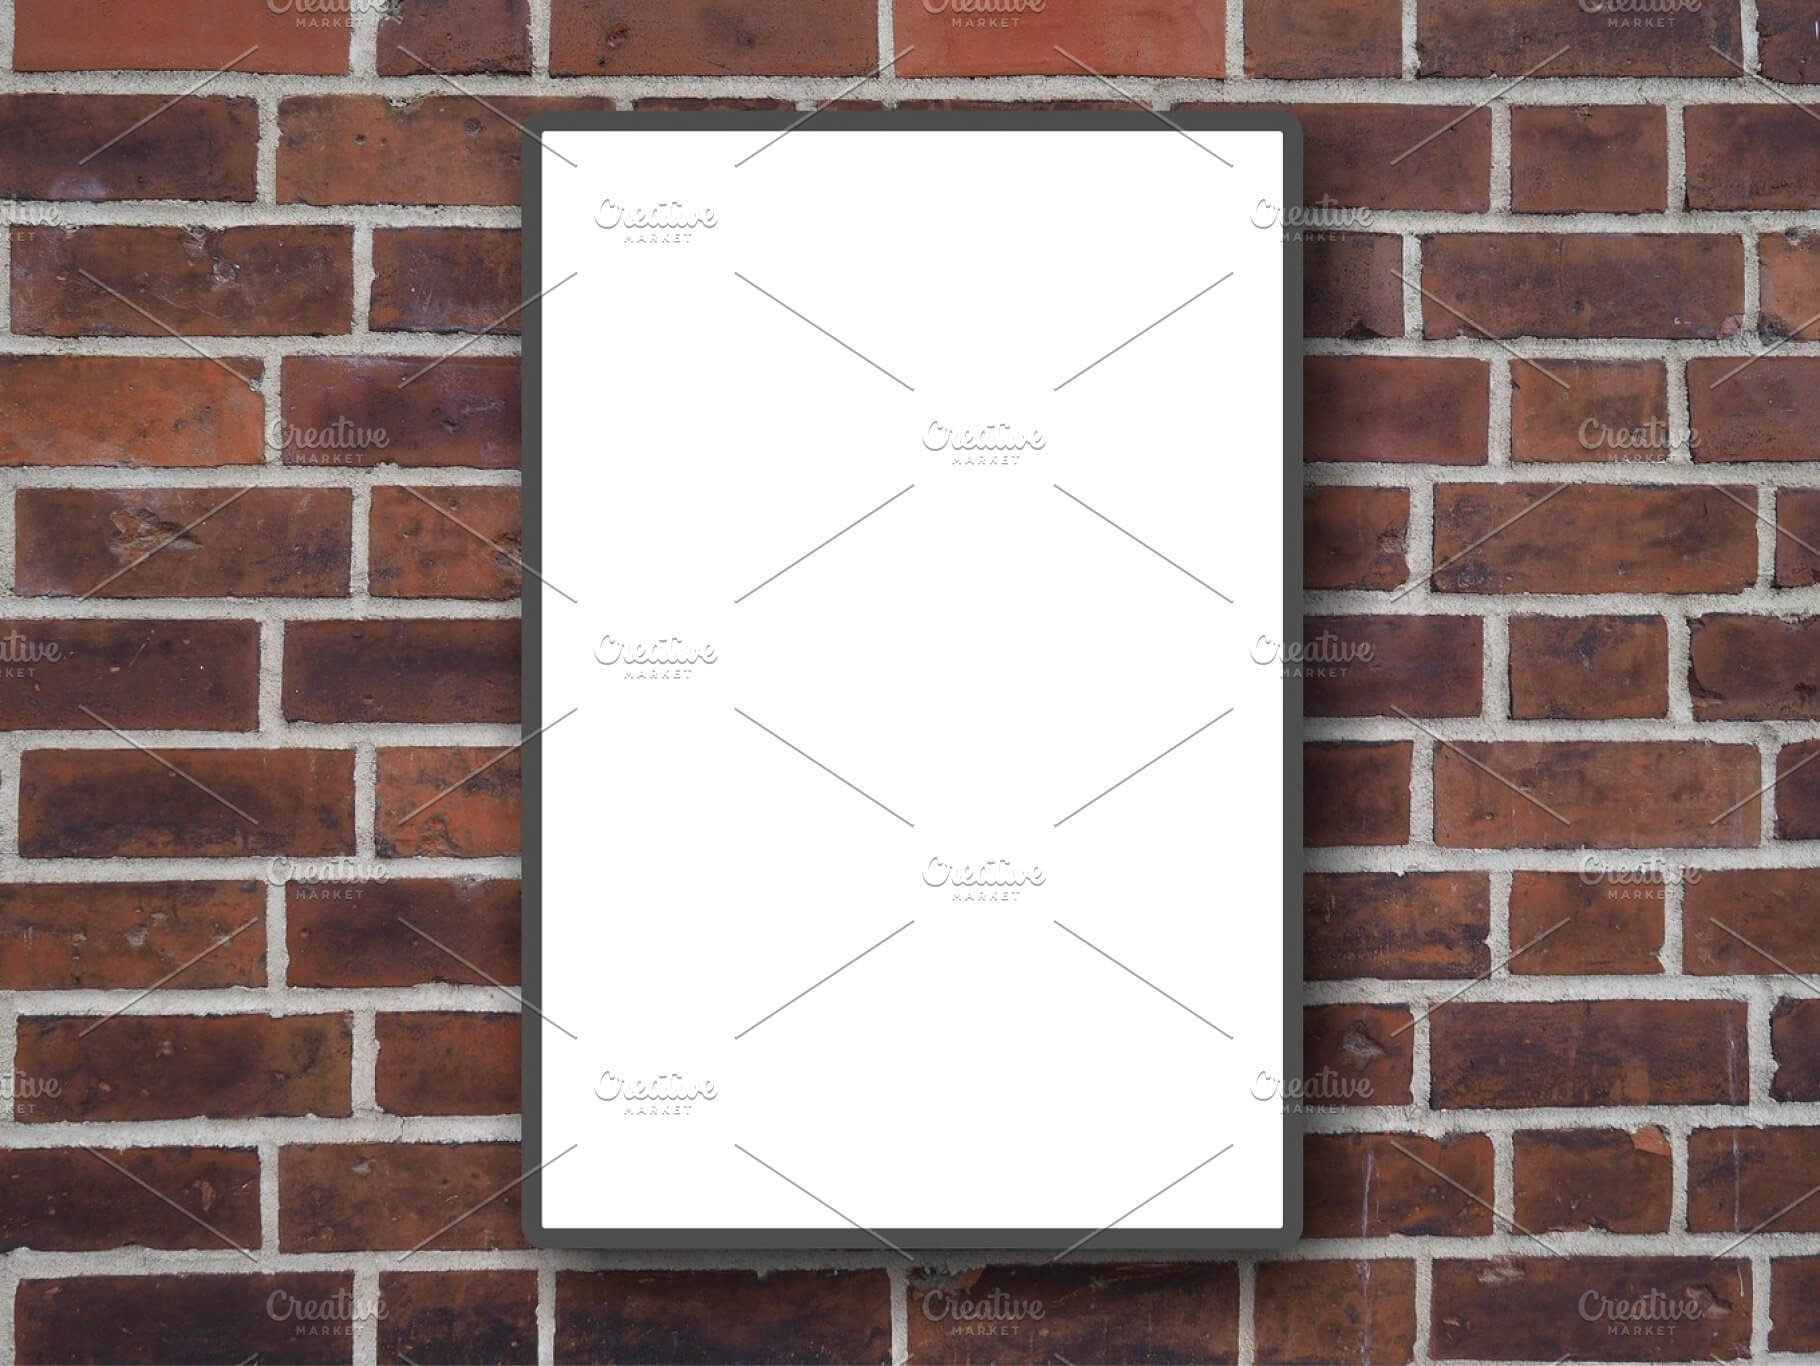 White Hoarding Mockup hanged on a Red Brick Wall